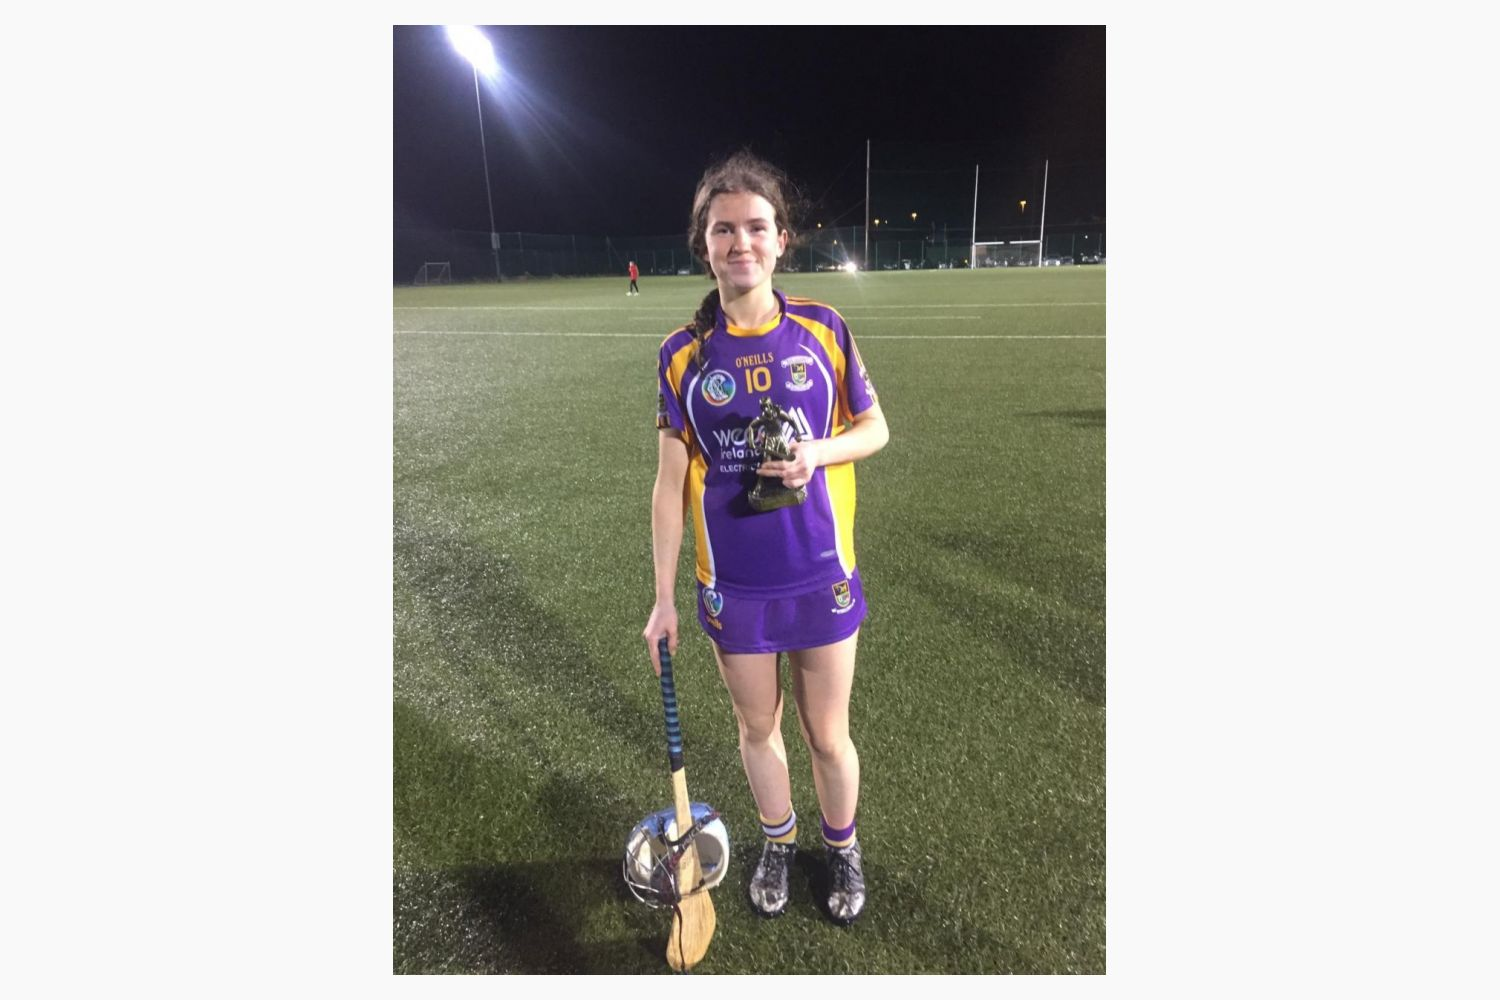 Róisín Ní Chathasaigh wins player of the match in the Junior 1 Final